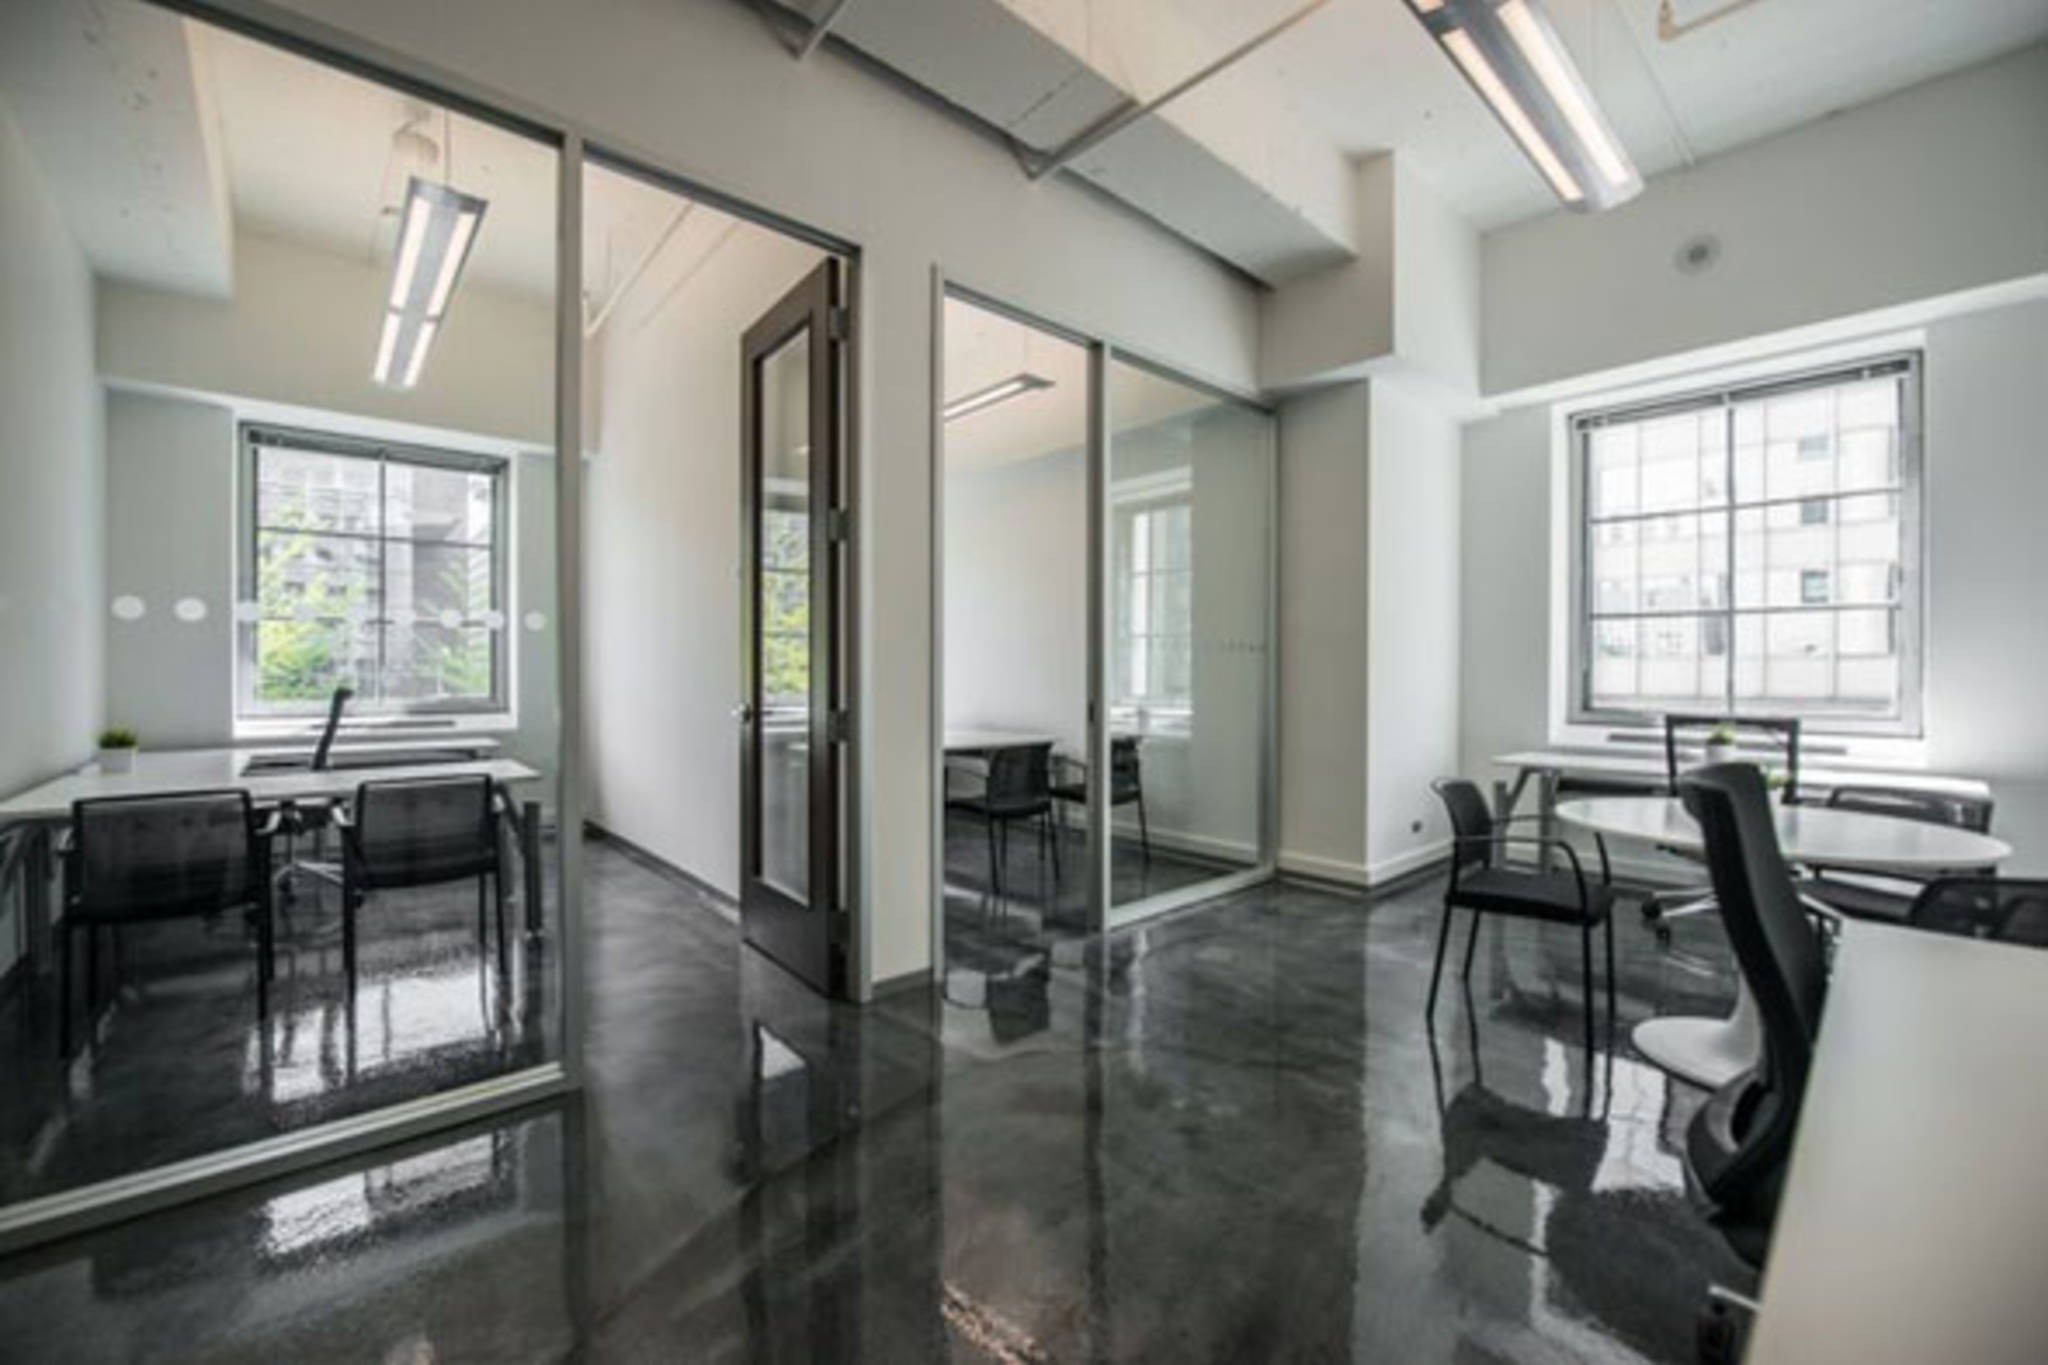 Best ideas about Rent Small Office Space . Save or Pin The top 10 new office rental and coworking spaces in Toronto Now.